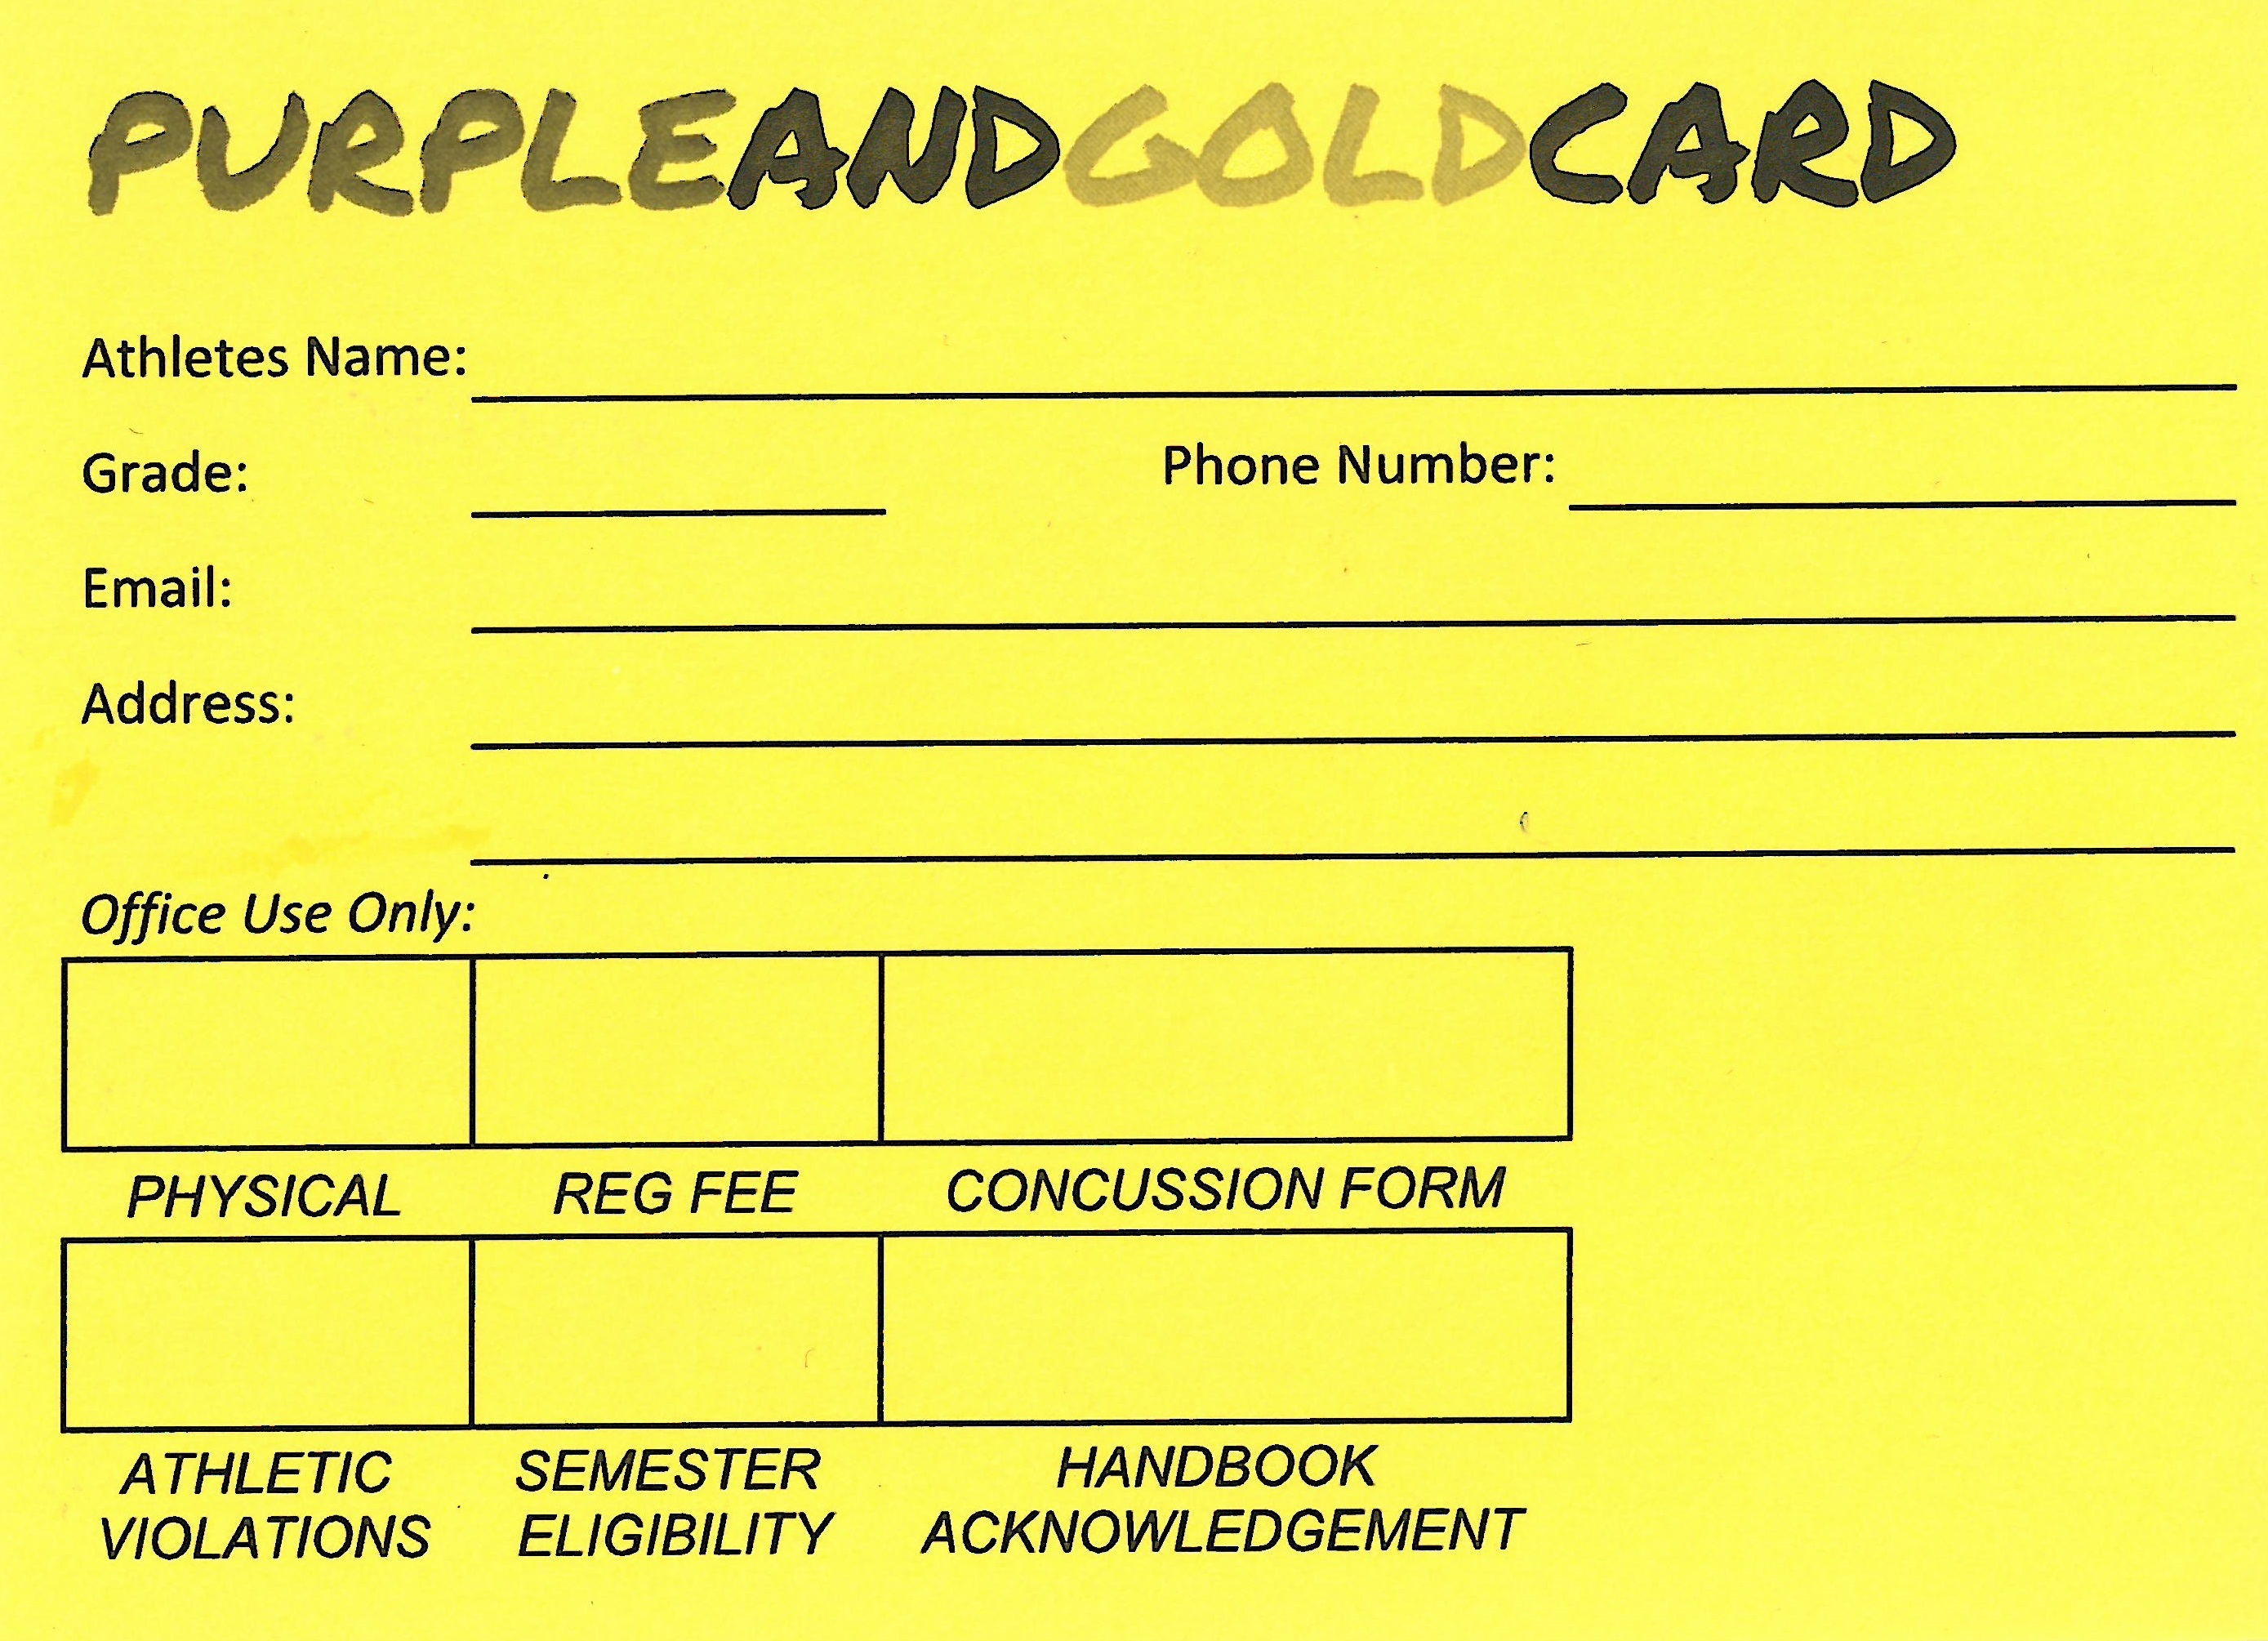 Spring Sports: Purple and Gold Card Required